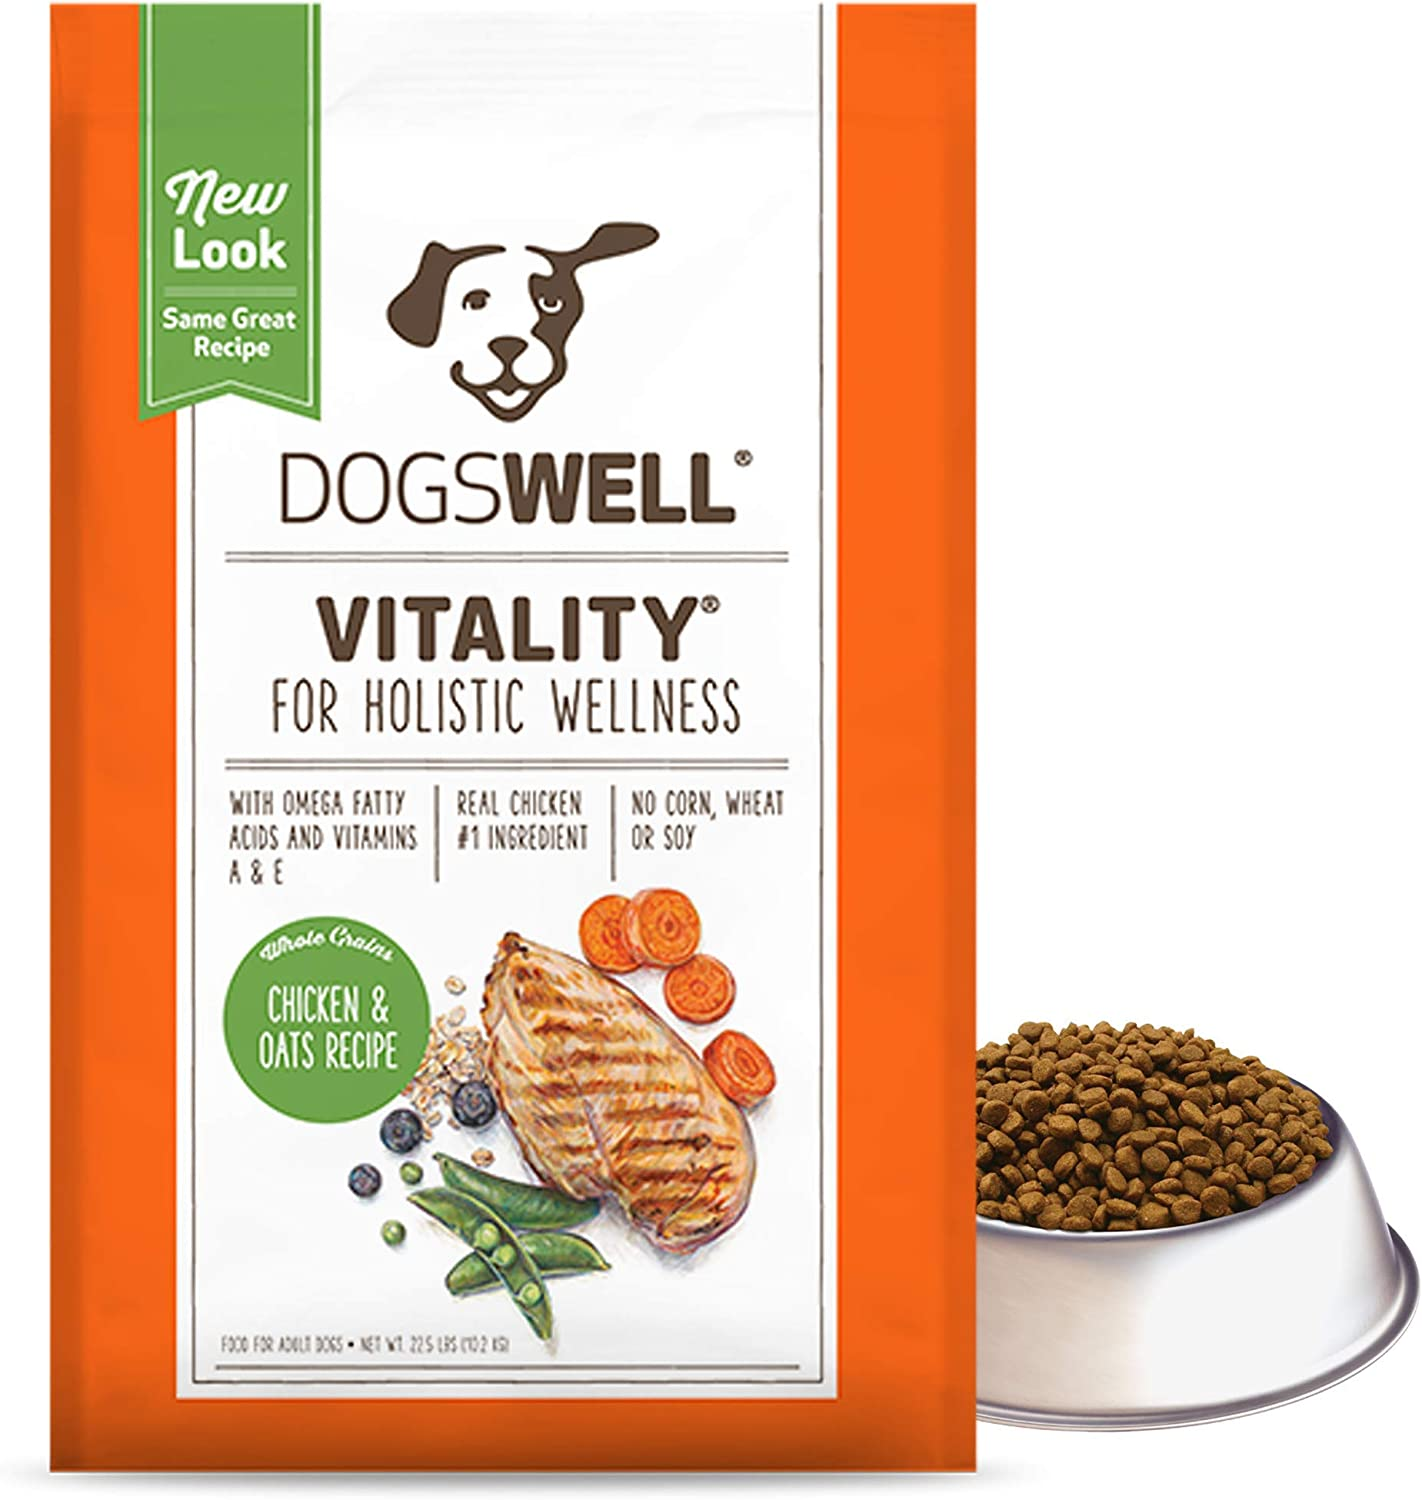 DOGSWELL Vitality Dry Dog Food, Vitamins & Essential Fatty Acids, Chicken & Oats Recipe, 22.5 lbs